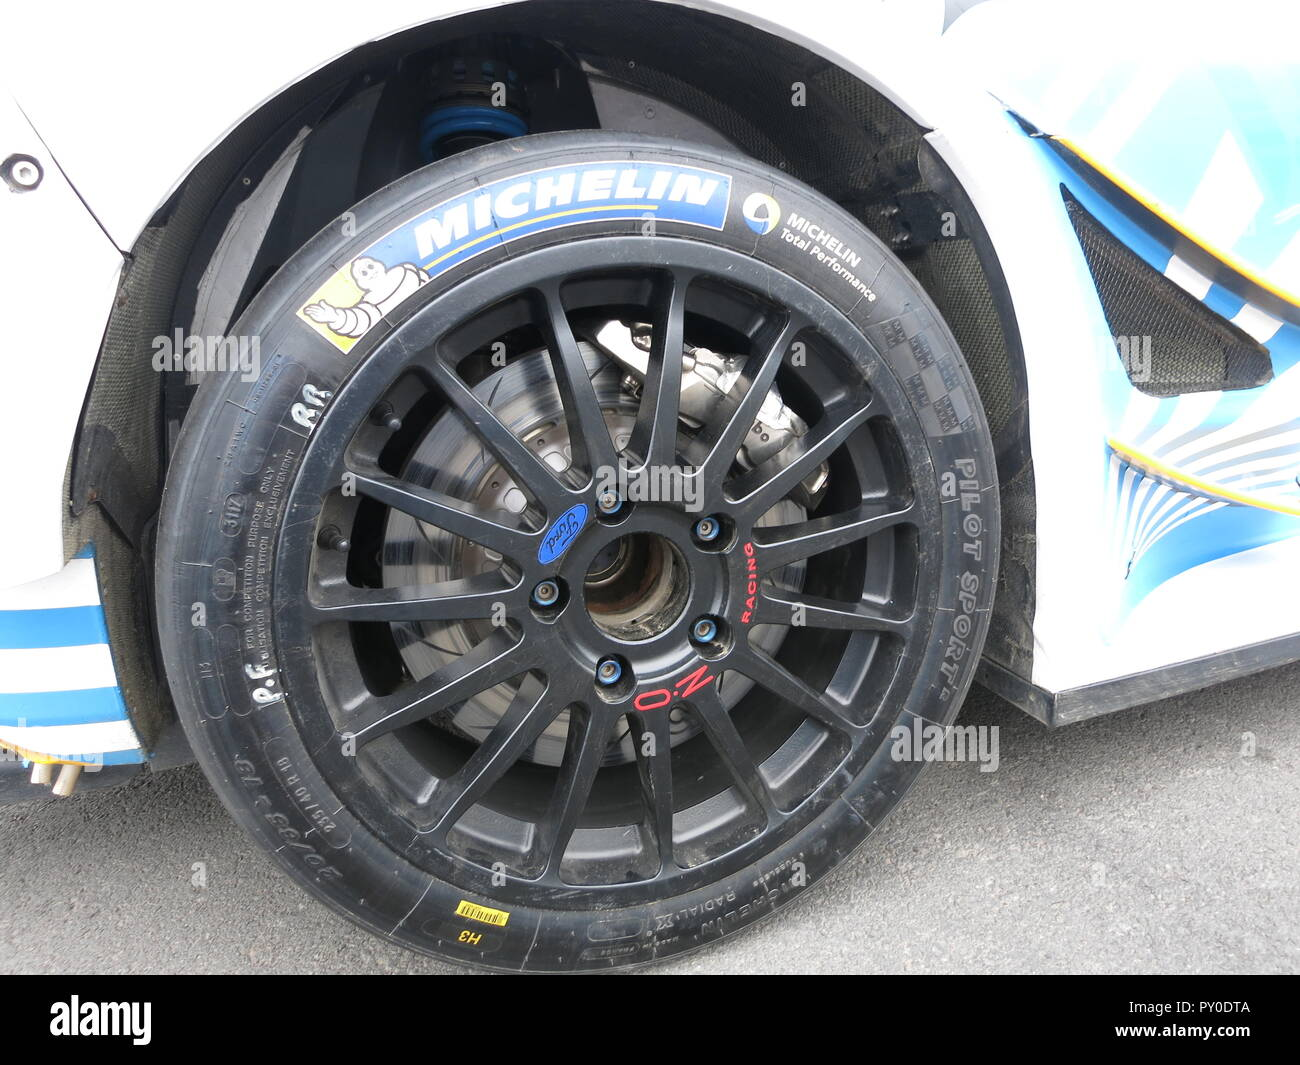 Ford fiesta RS WRC rally car shown at donnington park race circuit at the RS owners club national day in kroon oil livery after the ADAC rallye germany Deutschland 2018 close up of alloy wheel and competition racing brakes and suspension Stock Photo